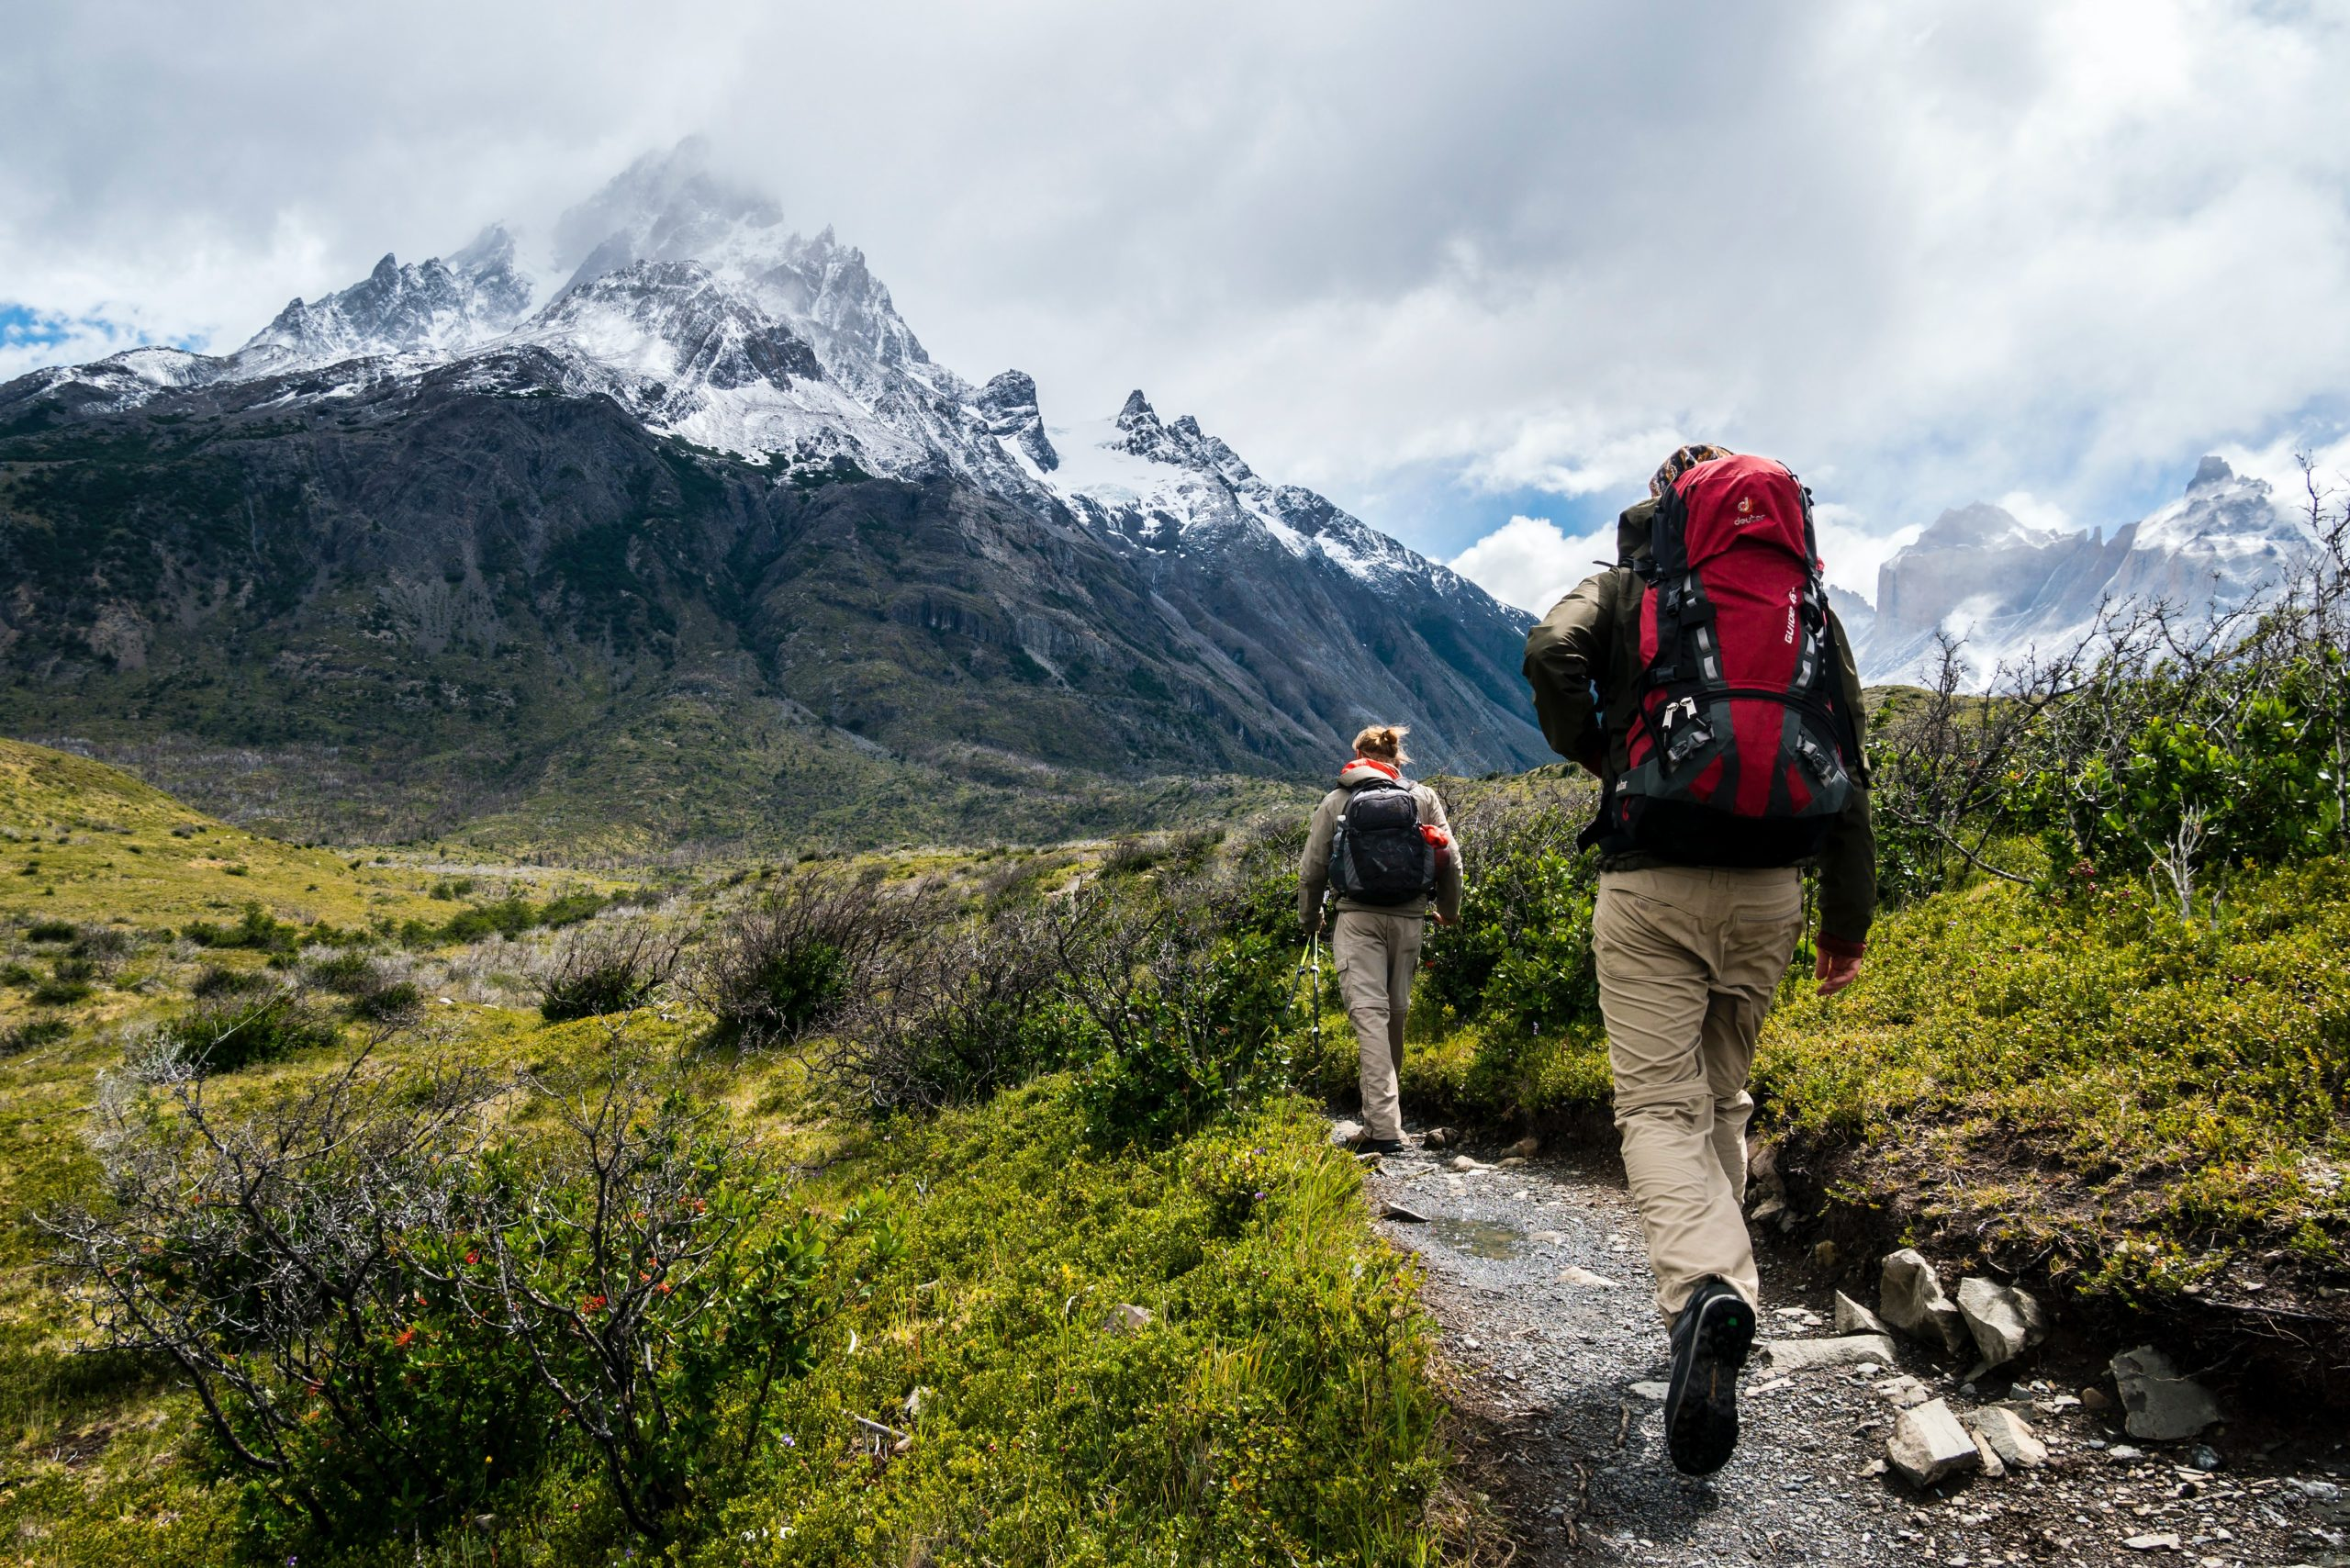 Travel incentives for adventure travel